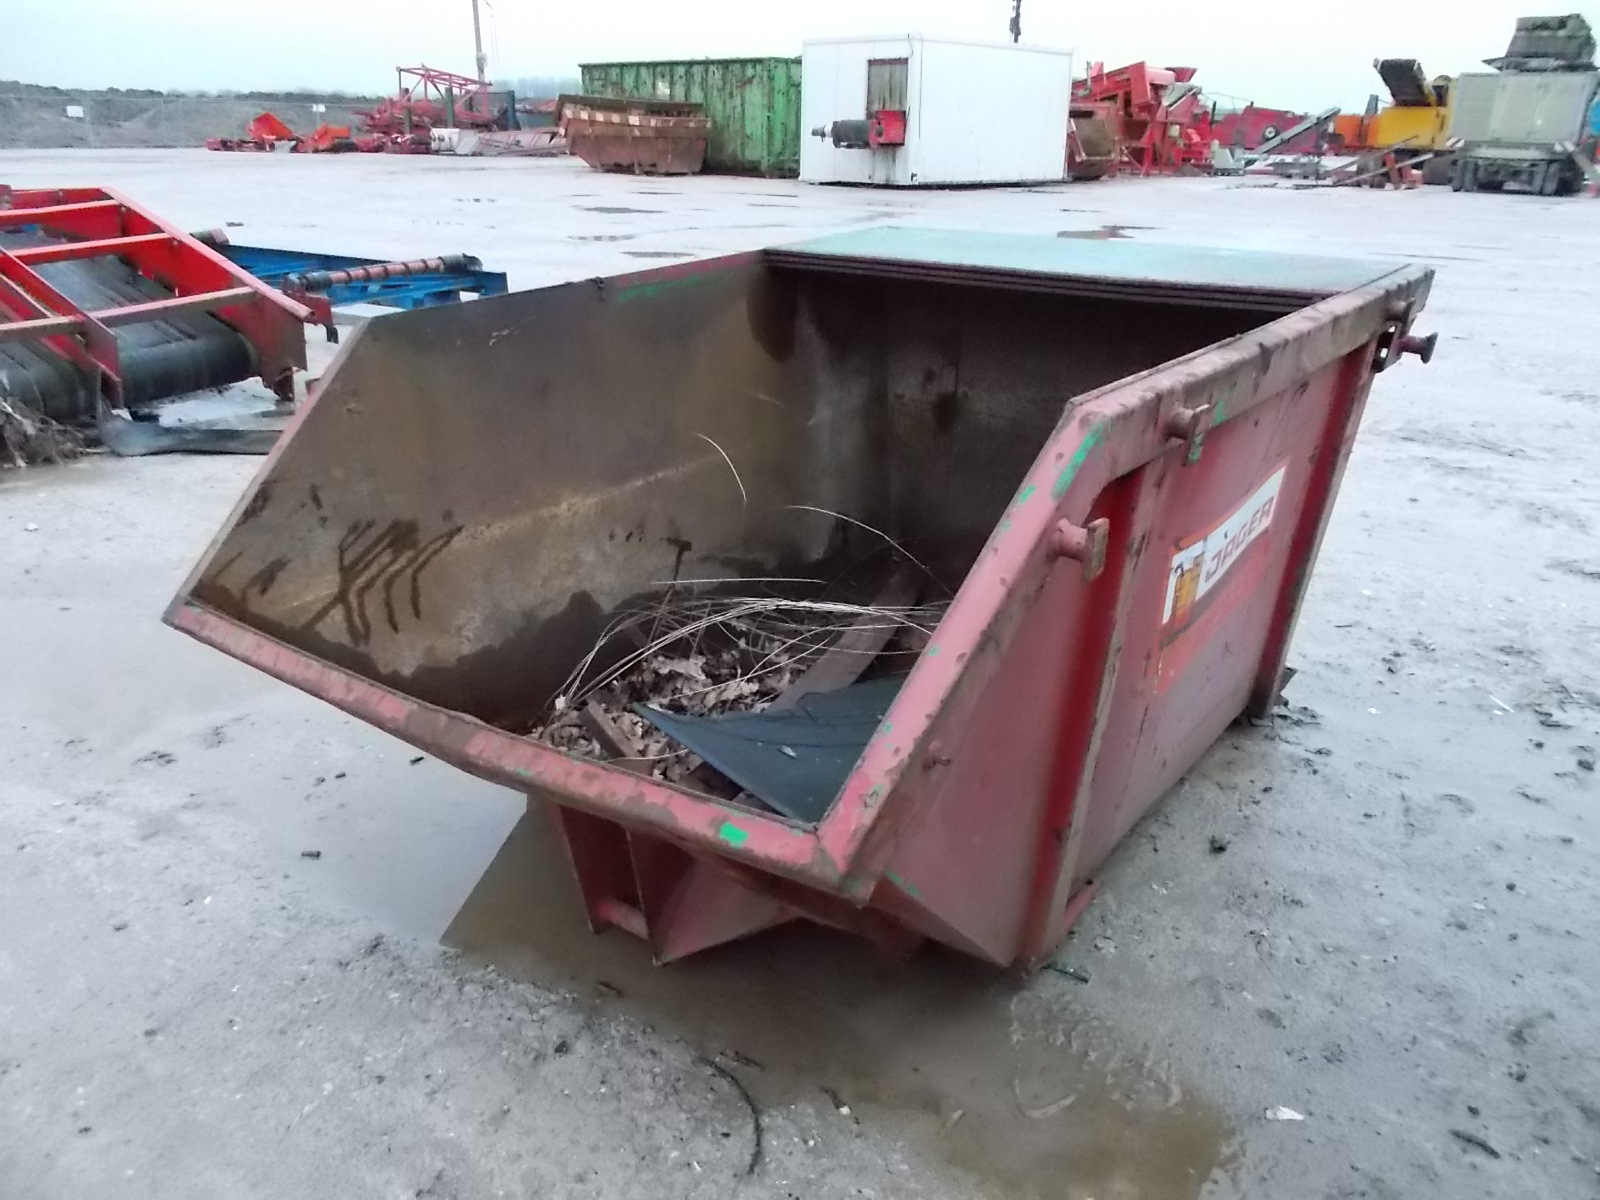 Vuilcontainer